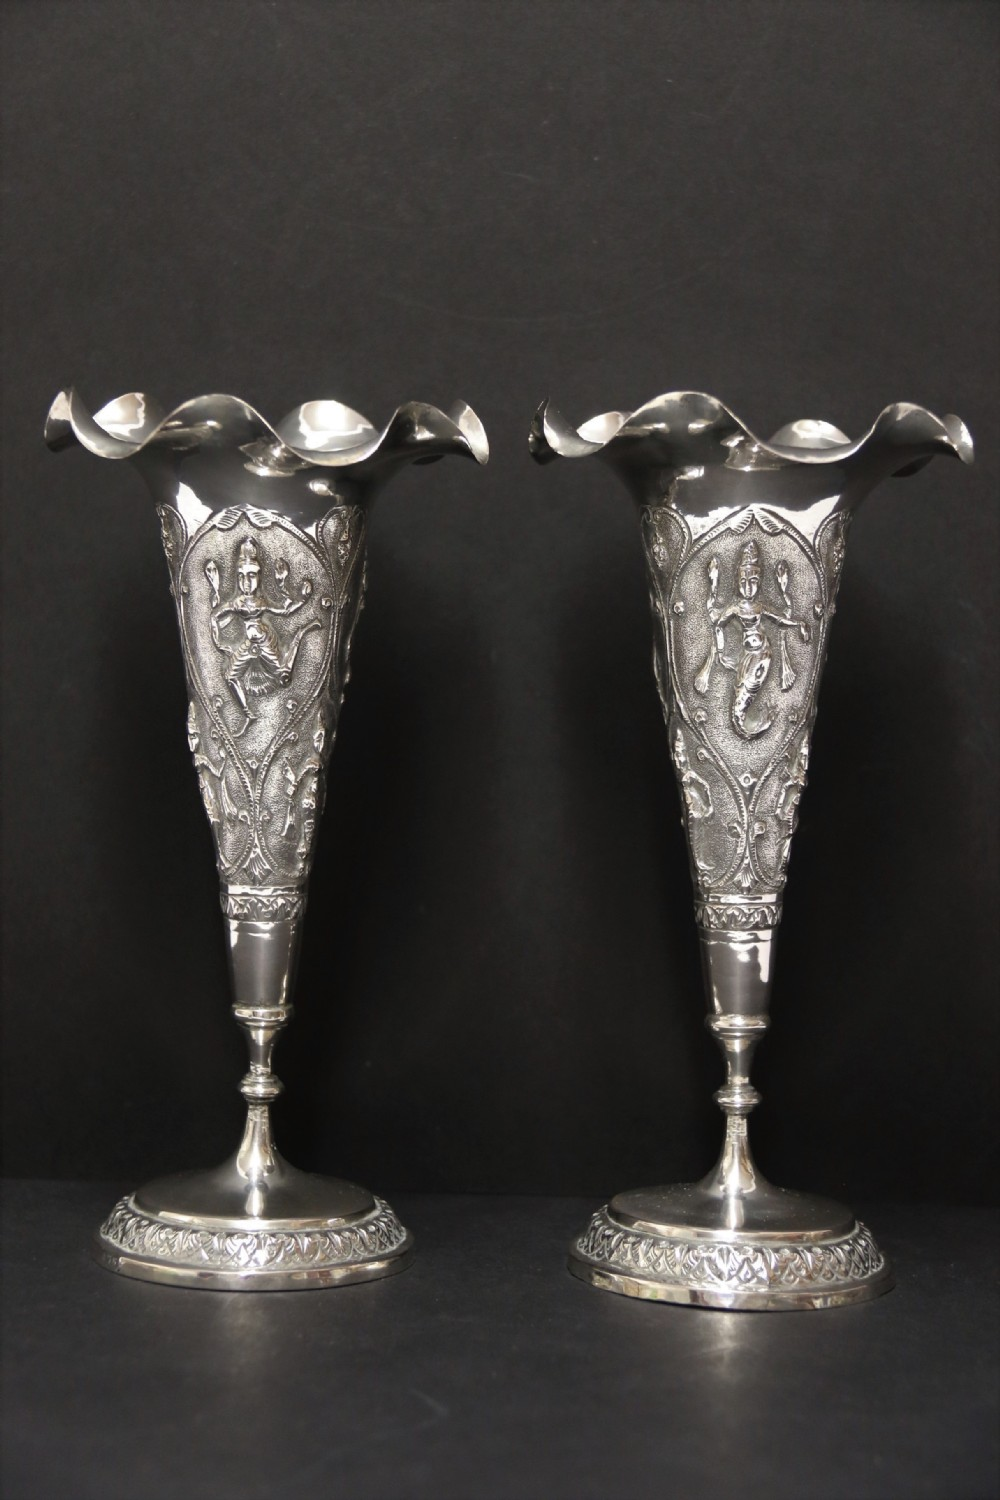 a fine pair of 19th century raj period indian silver vases